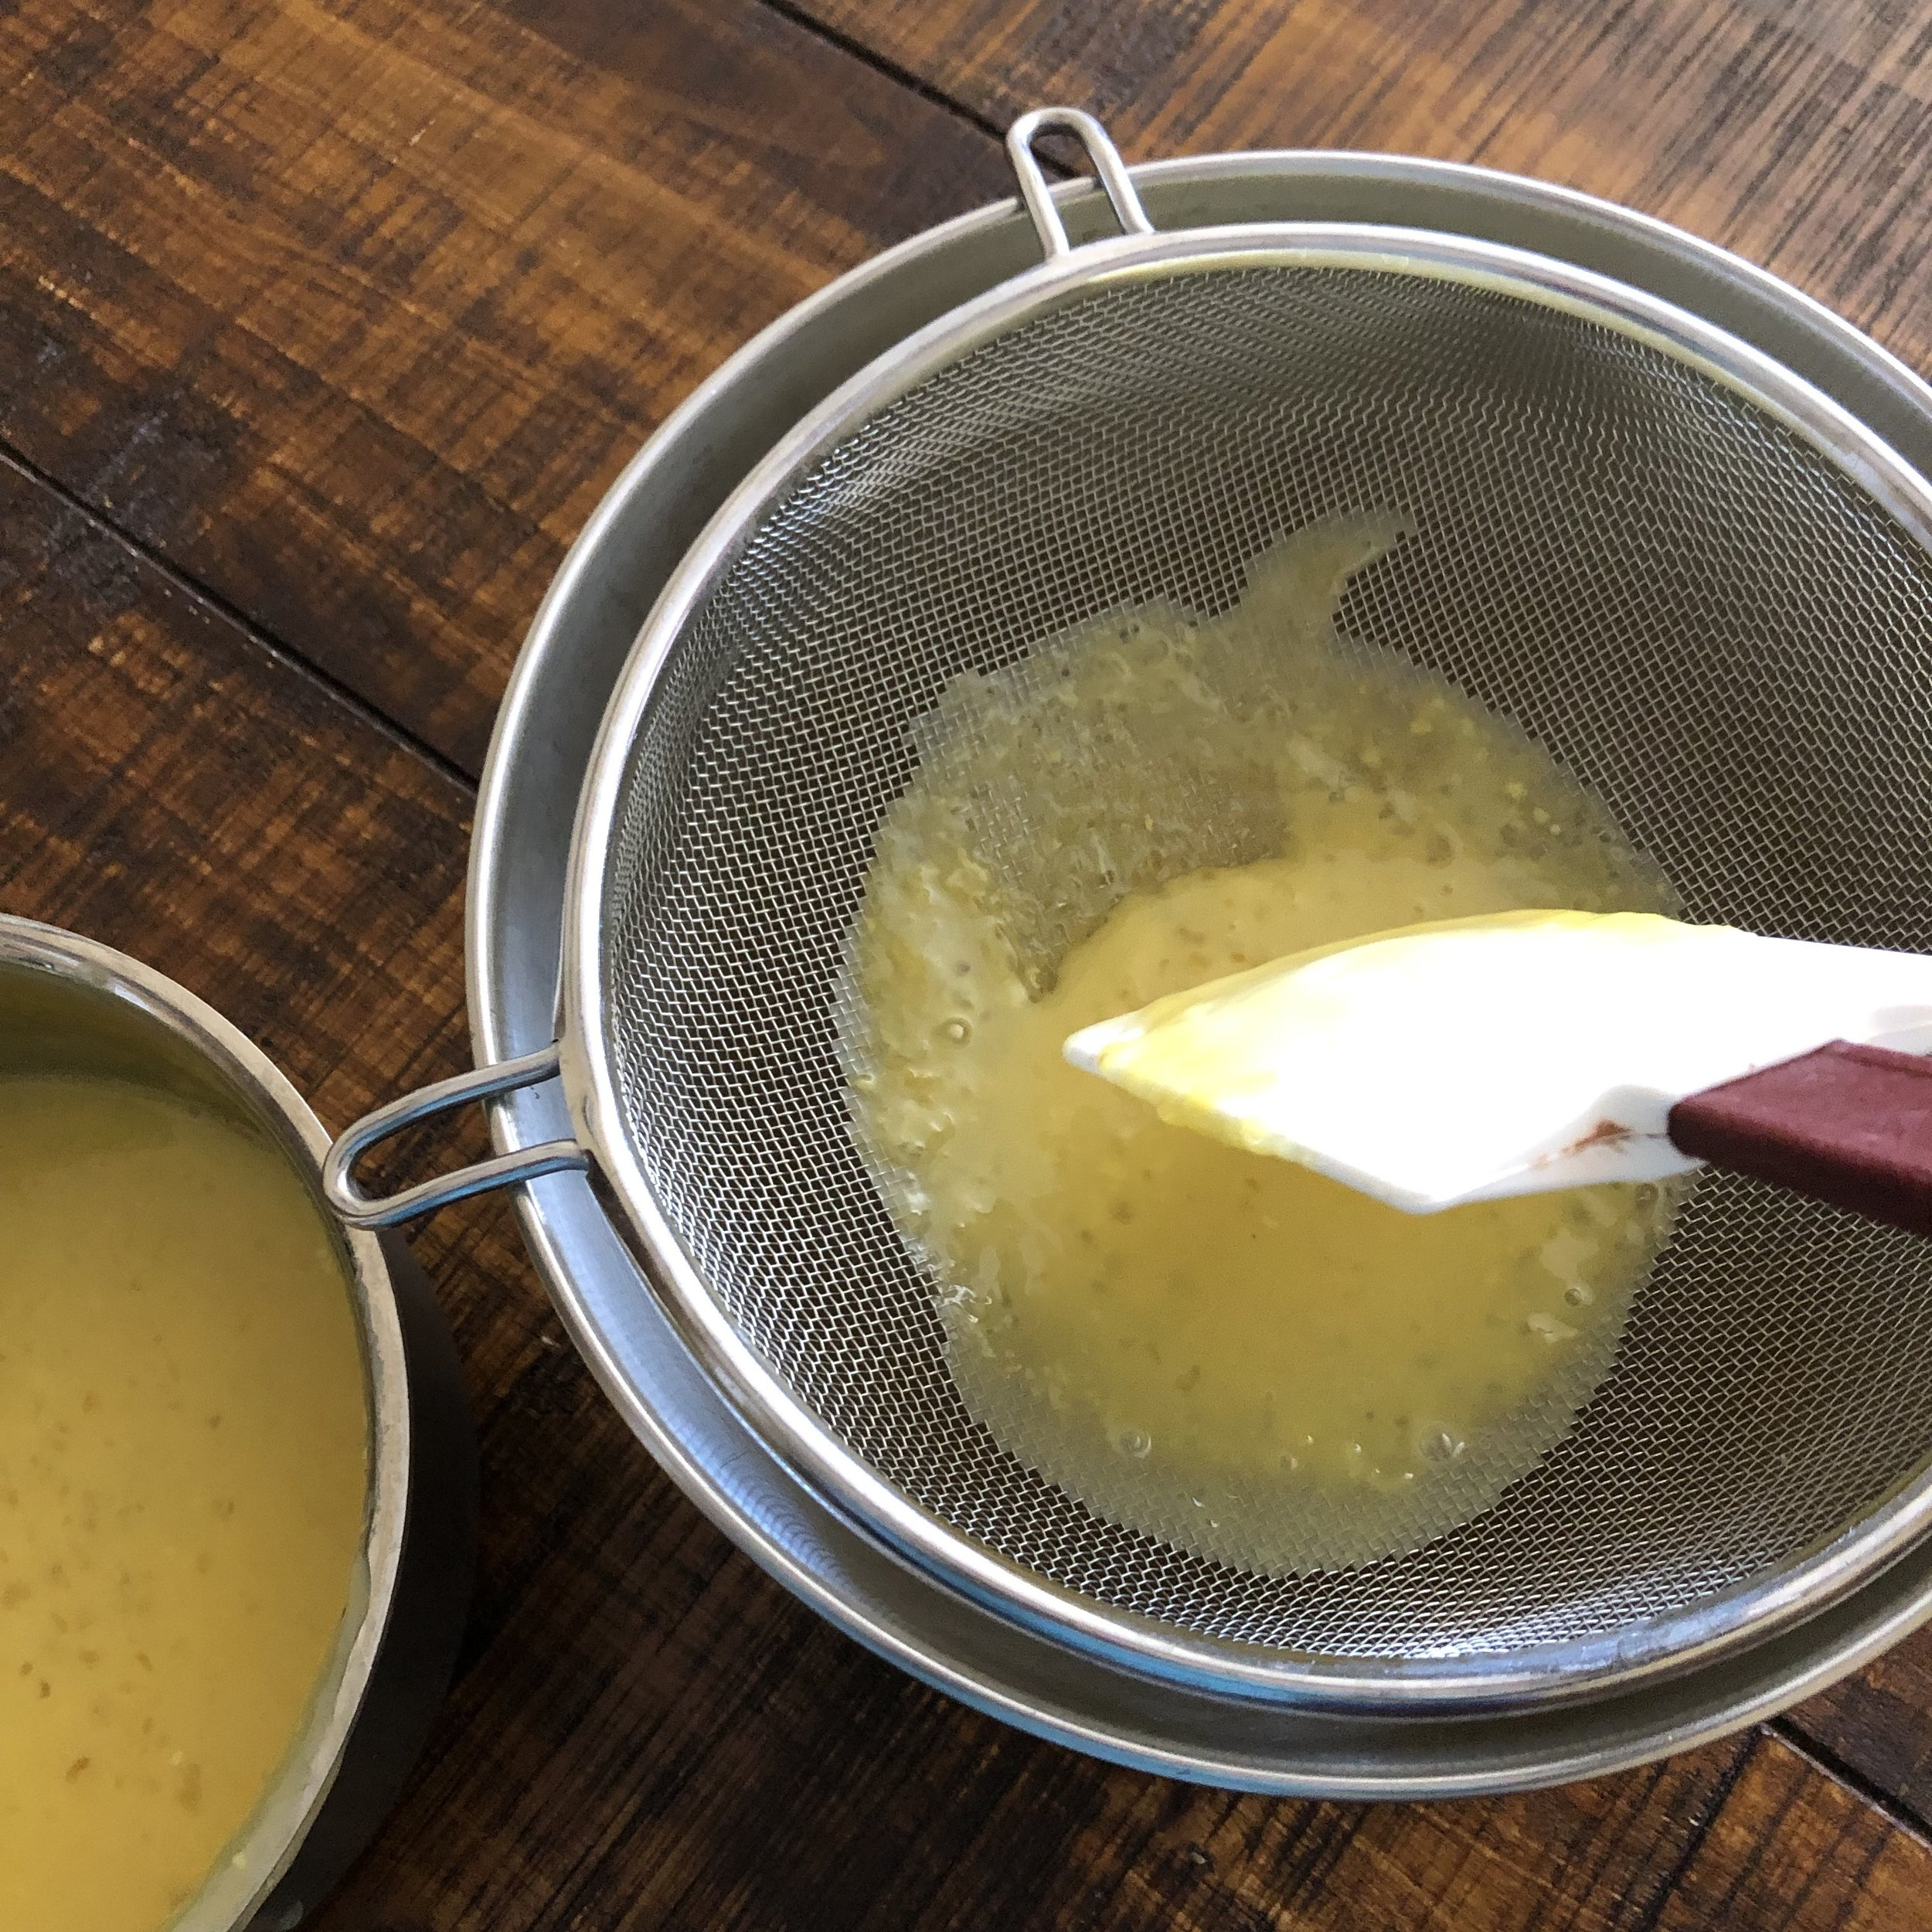 Strain the liquid through a mess strainer to remove any tapioca lumps, eggs bits, and large pieces of lemon zest. Use a rubber spatula to gently press it through.